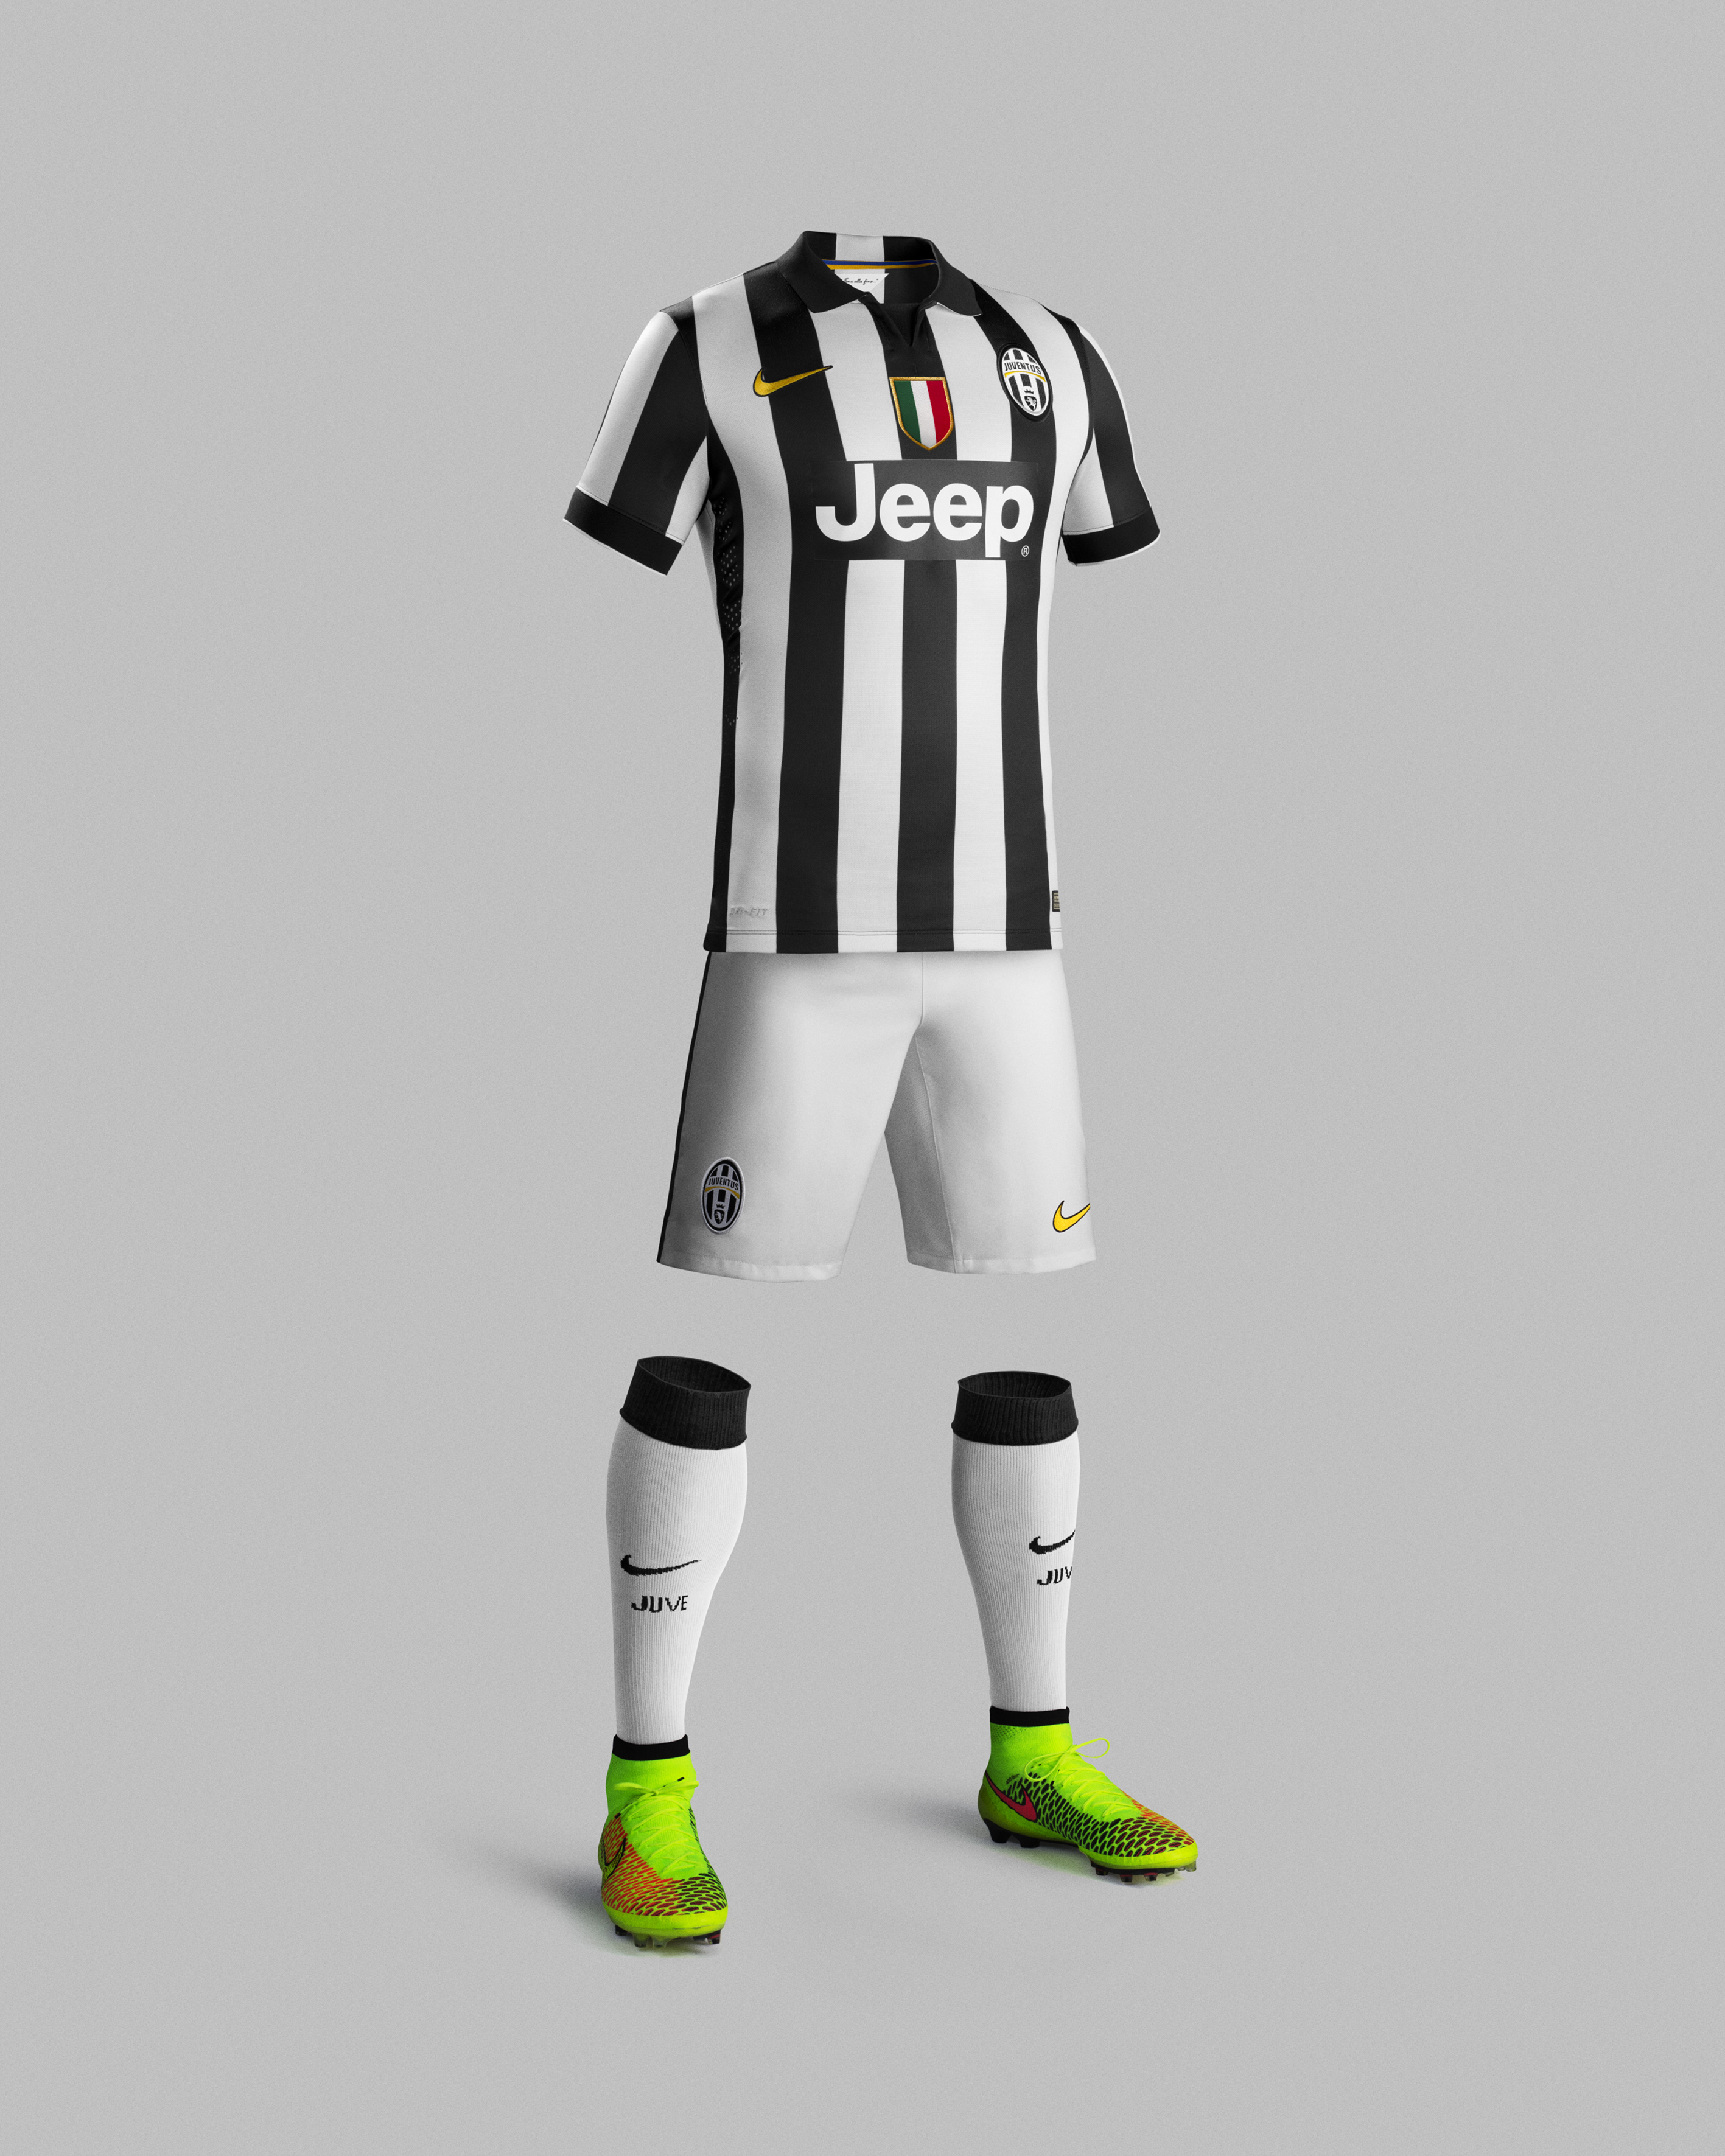 Su14_Match_Juventus_PR_H_Full_Body_R_original.jpg?1405418947